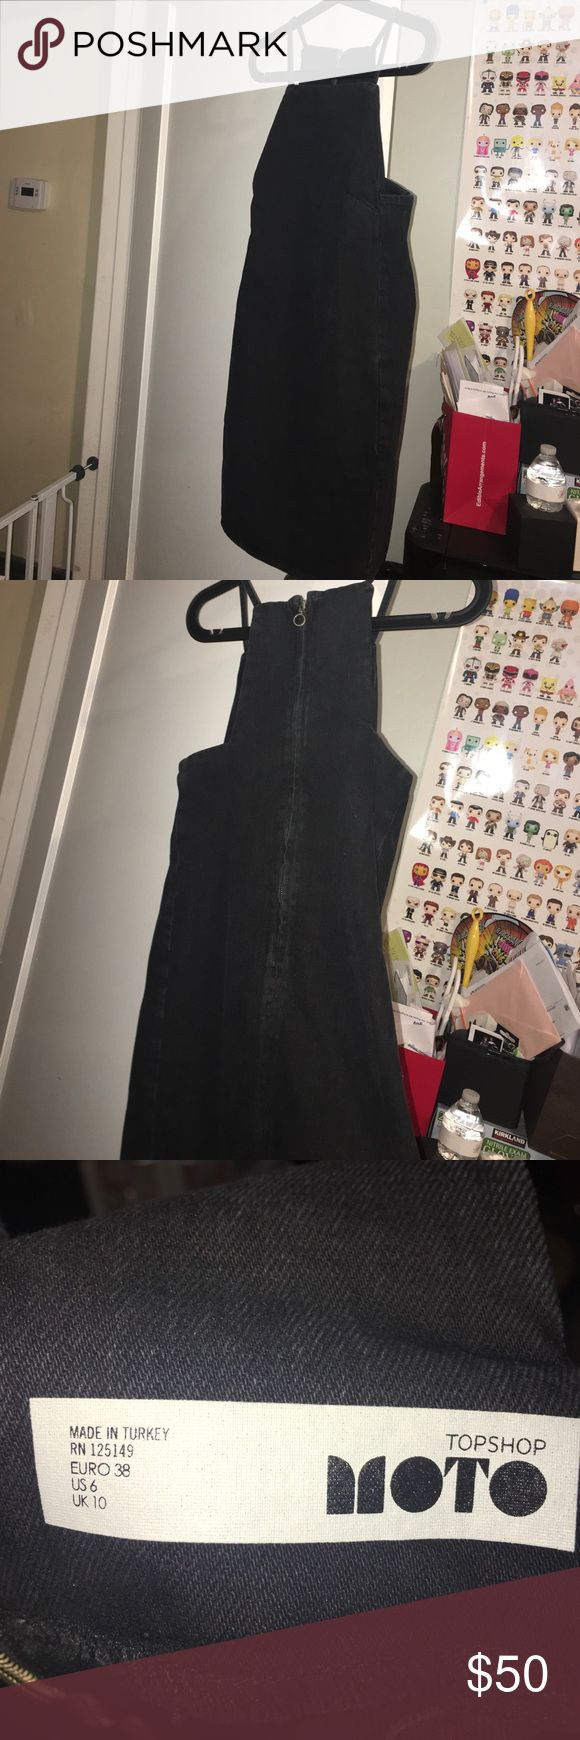 New Topshop Denim Moto Pinafore dress for sale. Brand new without tag Topshop Denim Moto Pinafore dress for sale. Color is washed black. Size is 6 but runs small so fits sizes 2-4. Topshop Dresses